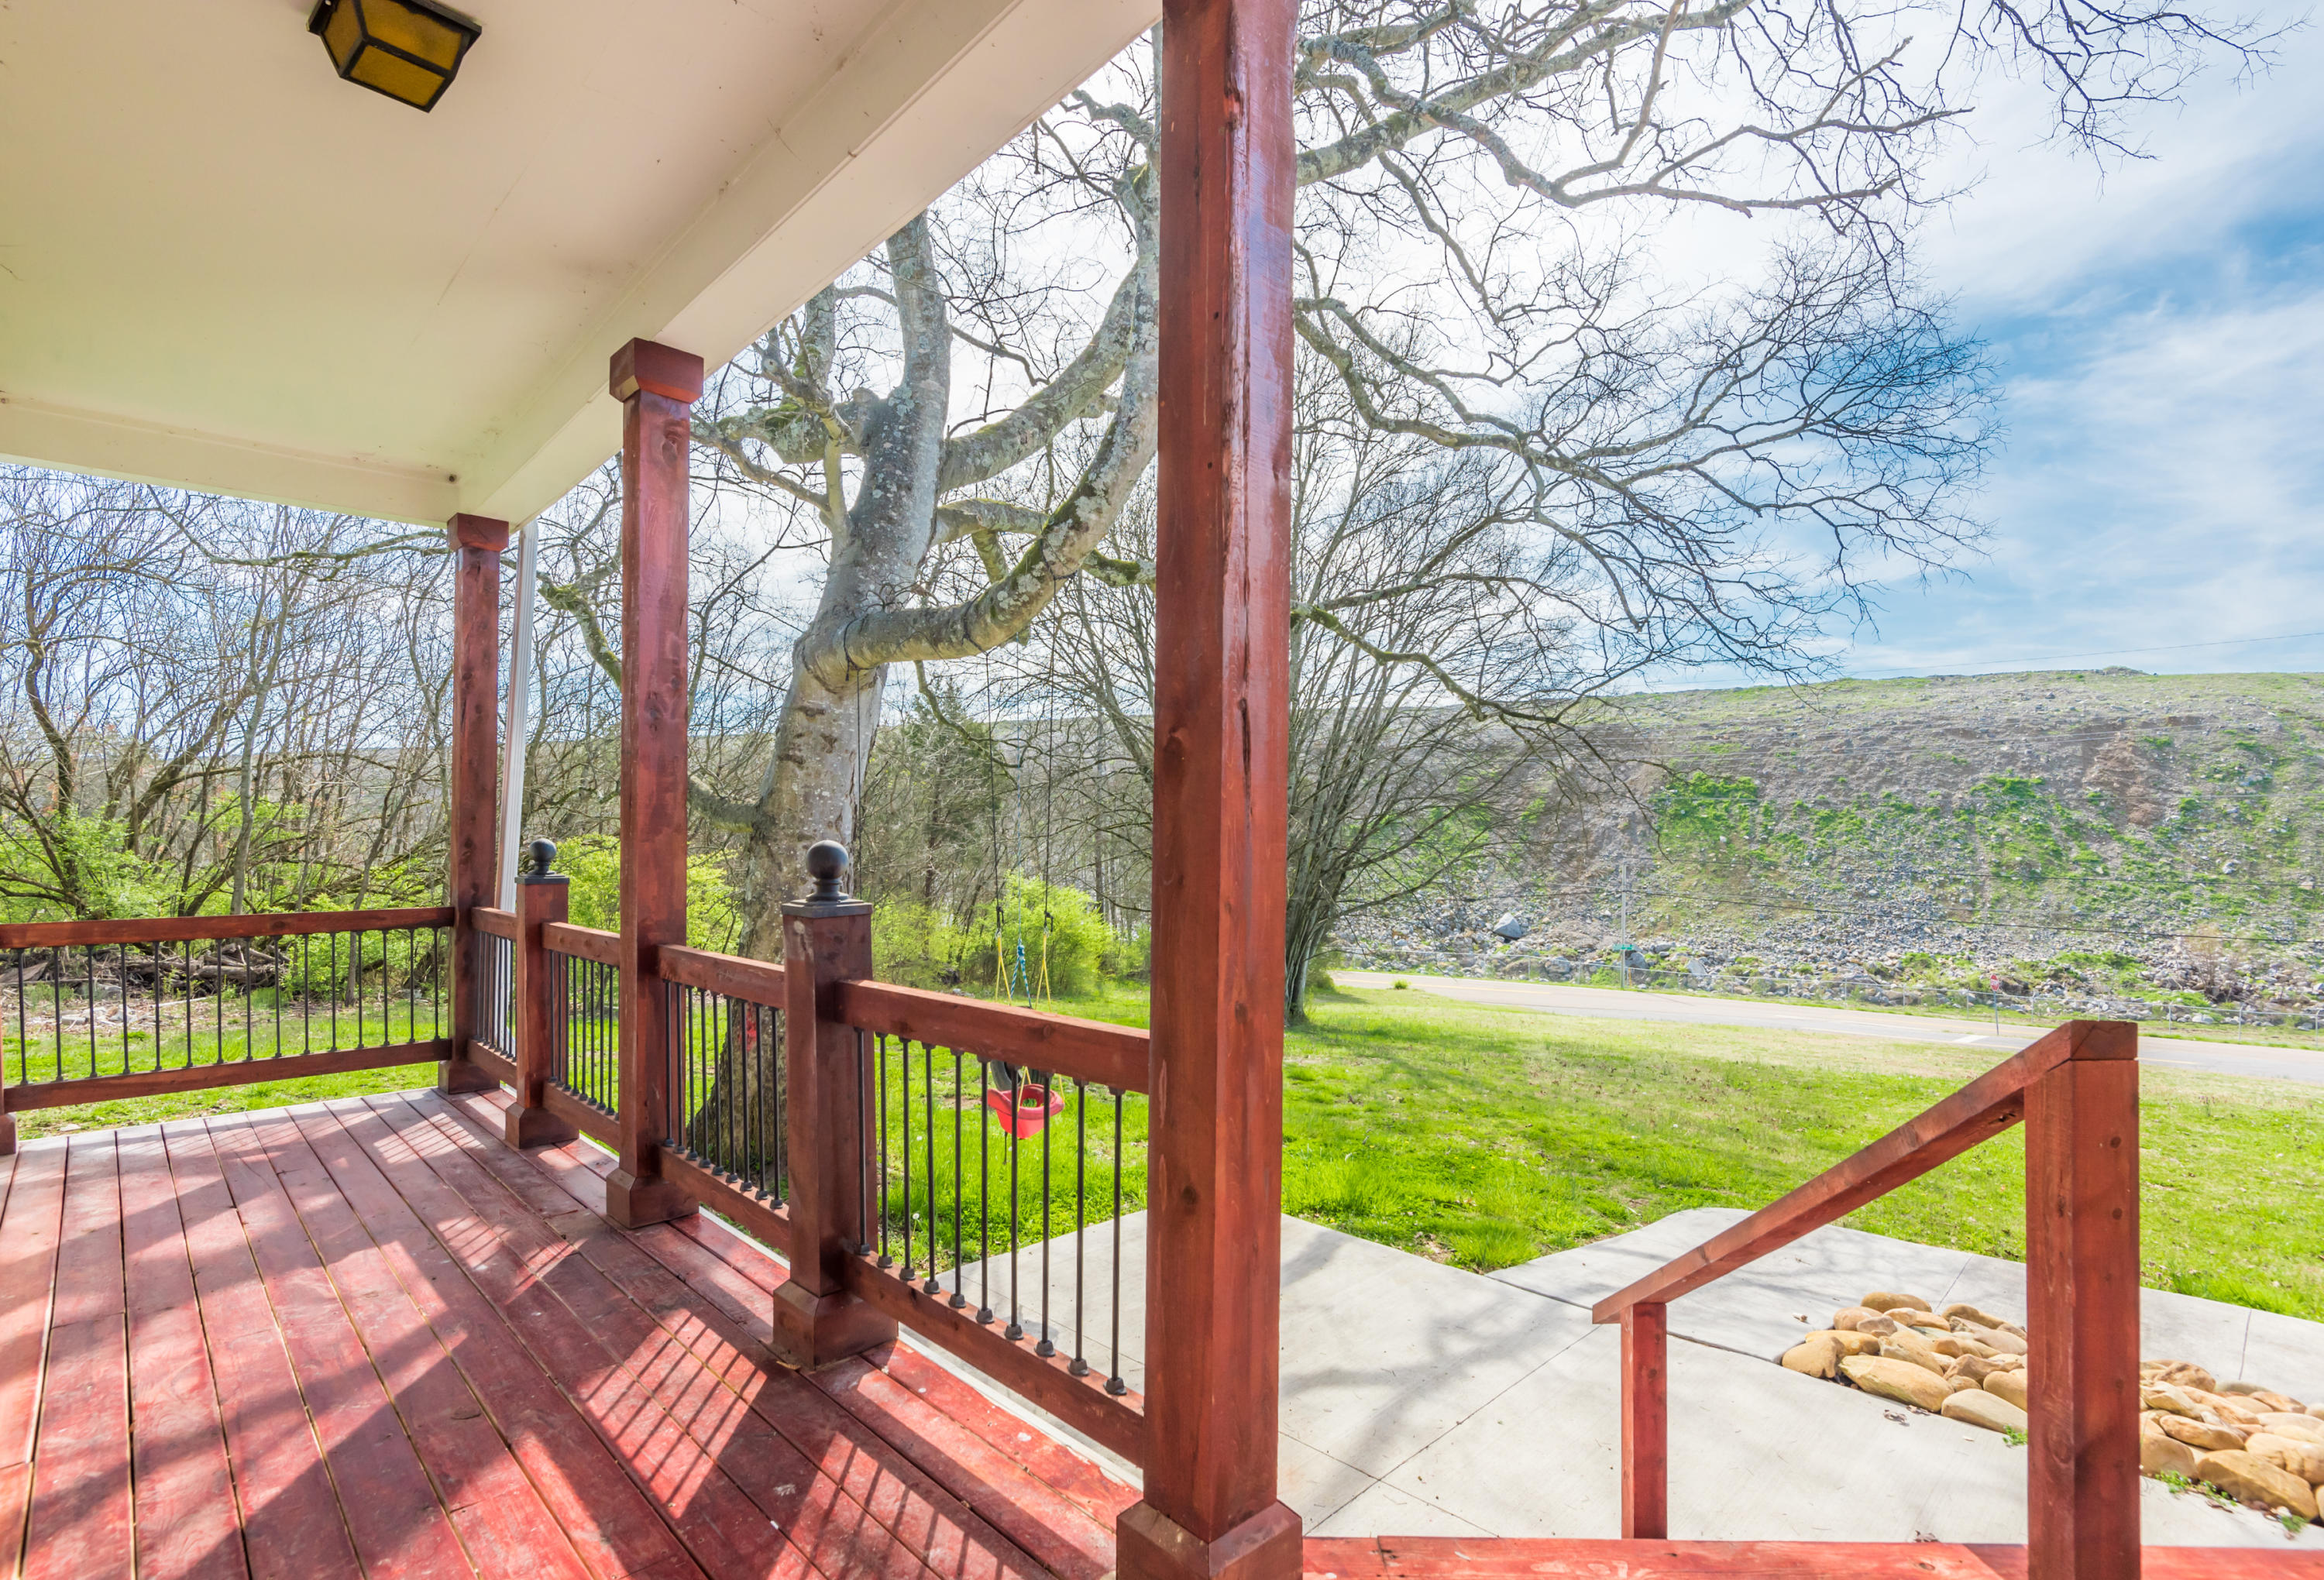 2930 Thorngrove Pike, Knoxville, Tennessee 37914, 3 Bedrooms Bedrooms, ,2 BathroomsBathrooms,Single Family,For Sale,Thorngrove,1073263